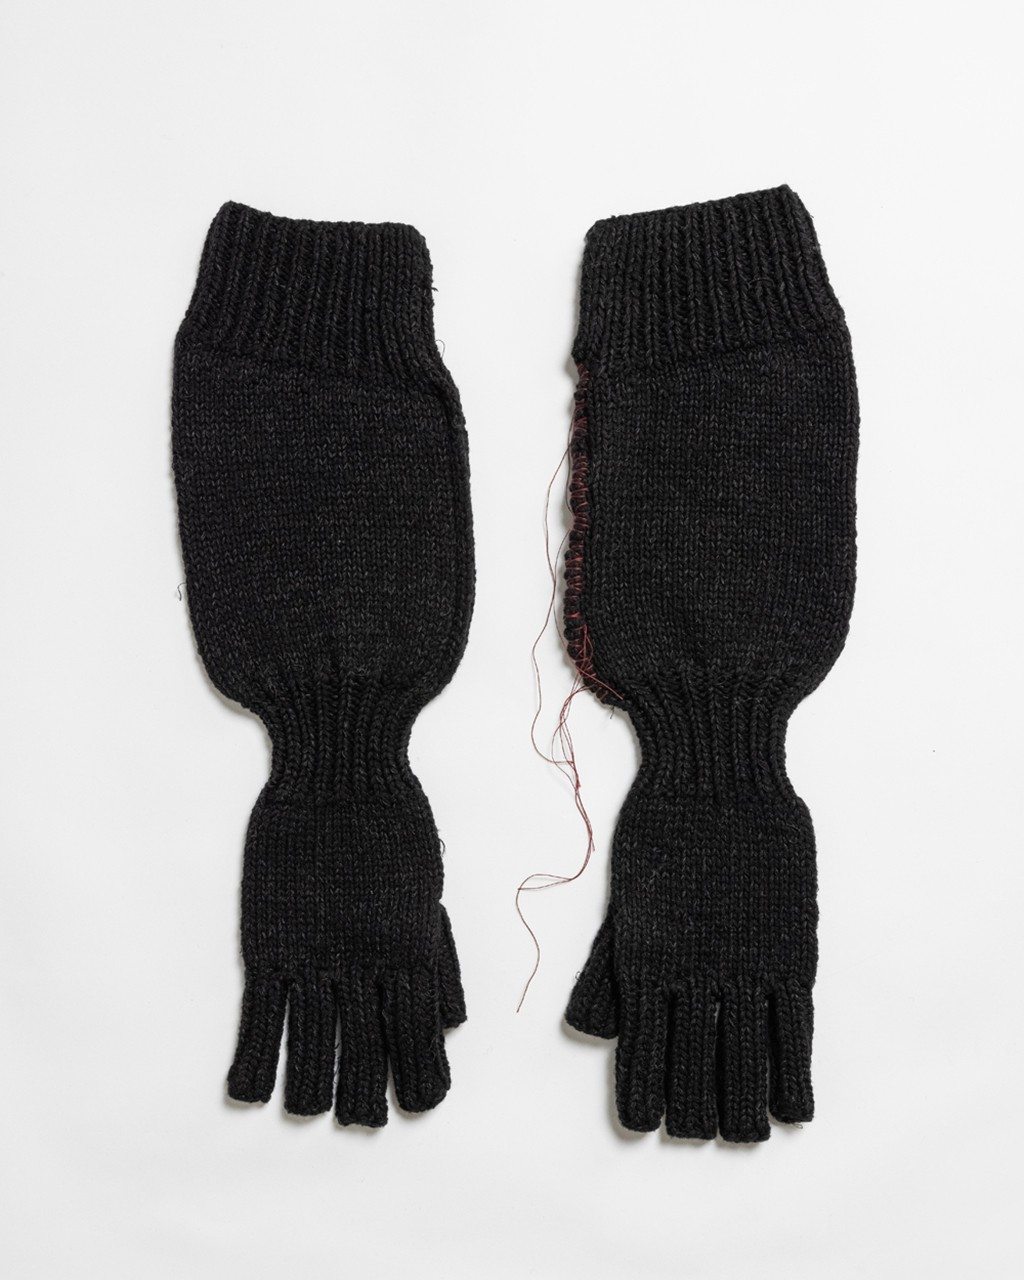 21AW DUE-Ⅲ-039-ACC-BLK Knit Glove